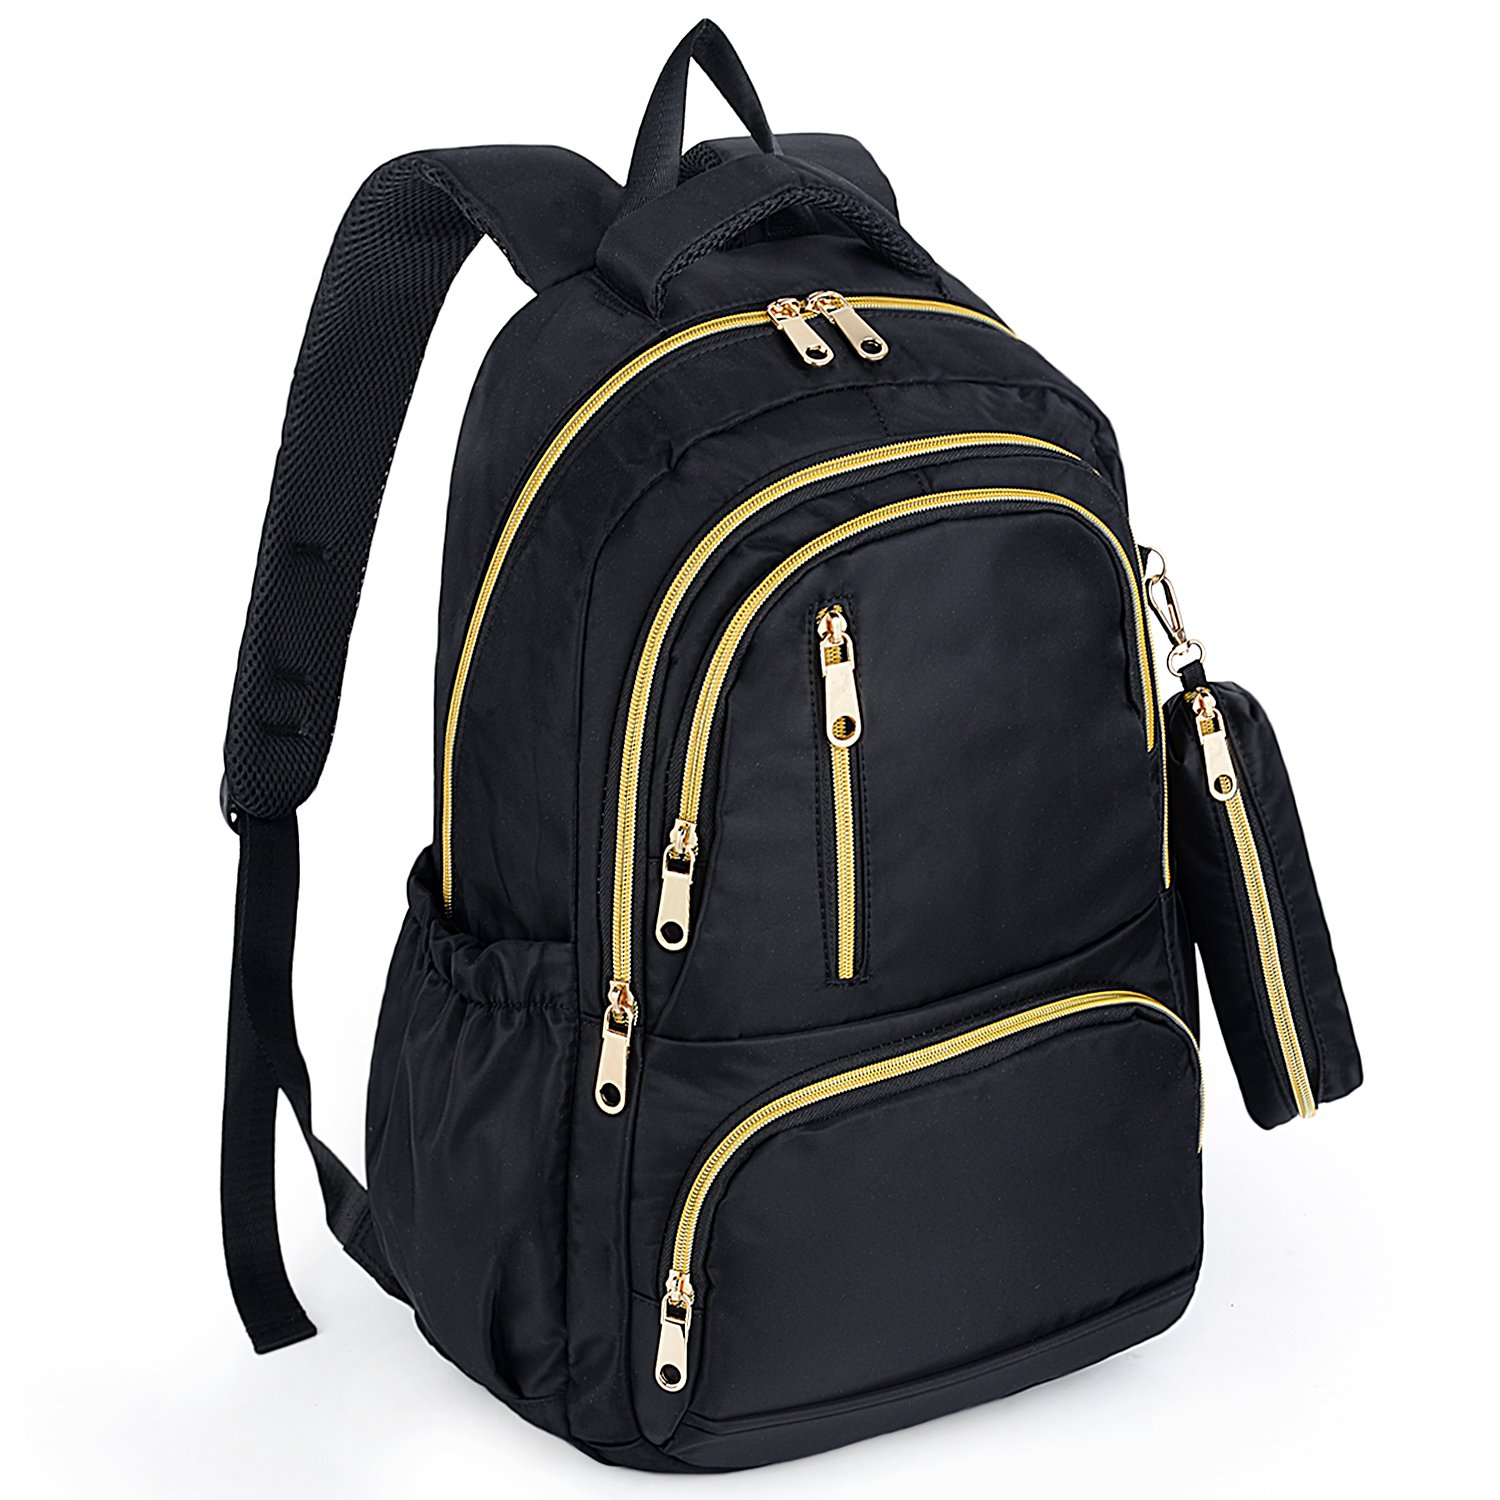 UTO Fashion Backpack Oxford Waterproof Cloth Nylon Rucksack School College Bookbag Shoulder Purse Pencil Bag